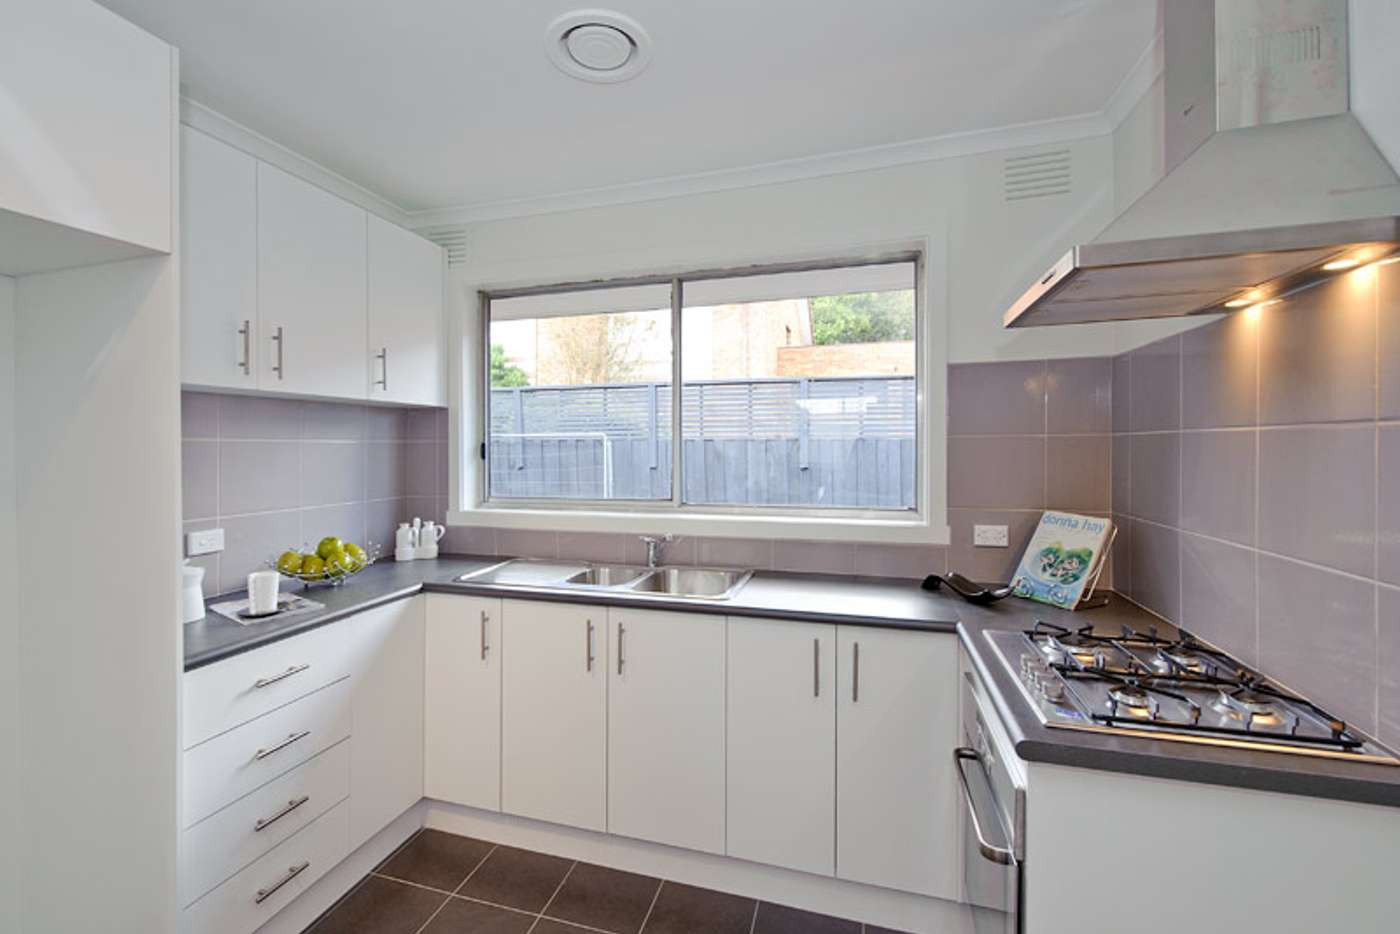 Main view of Homely unit listing, 2/67 Medway Street, Box Hill North VIC 3129